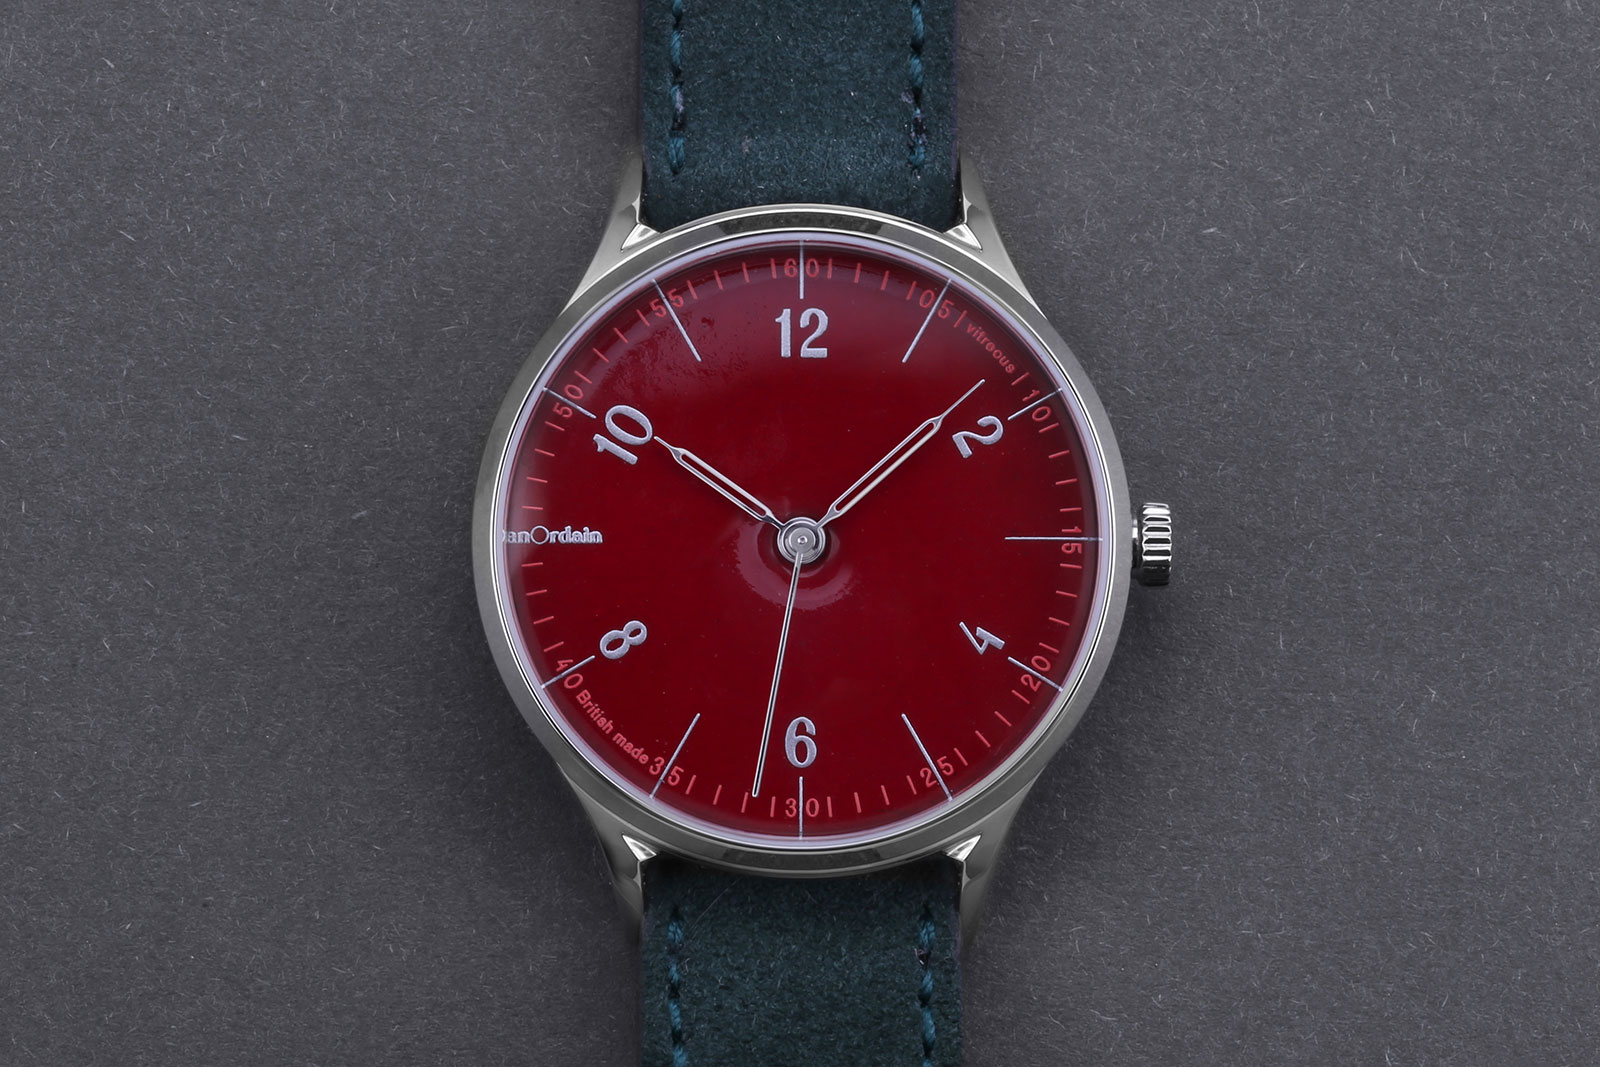 Anordain Model 1 enamel dial watch 6